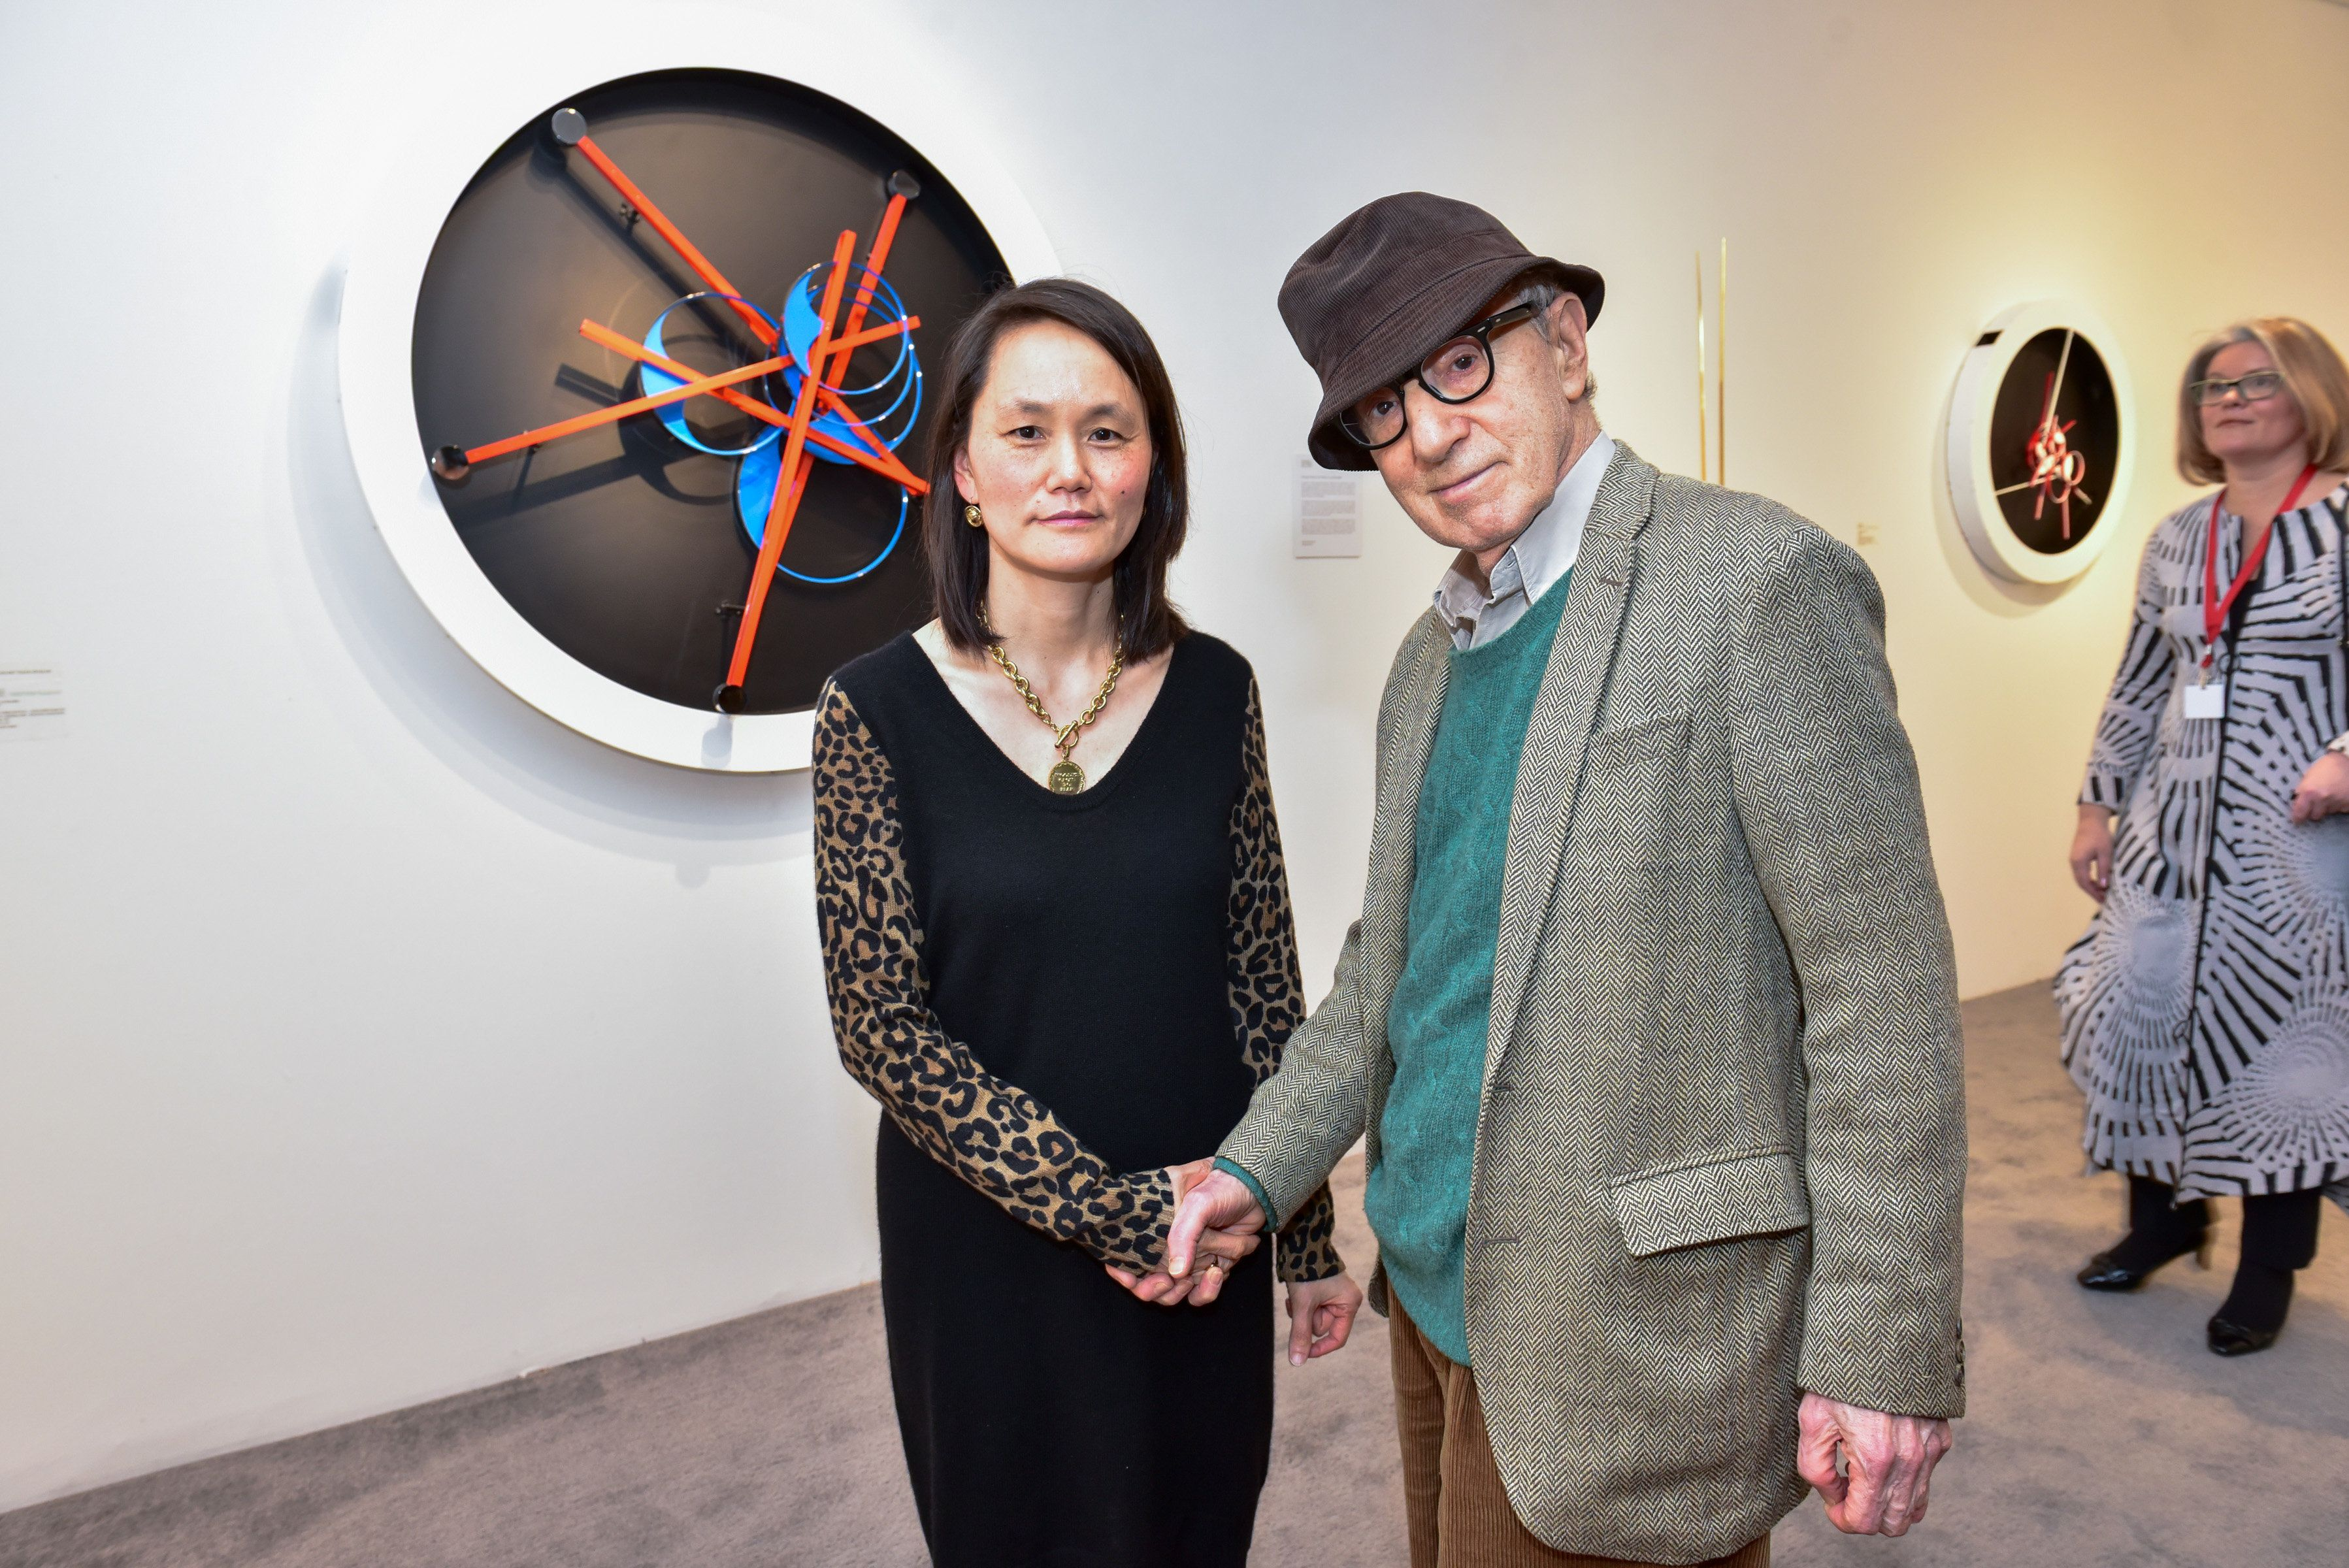 Soon-Yi Previn Speaks About Romance With Woody Allen, Childhood With Mia